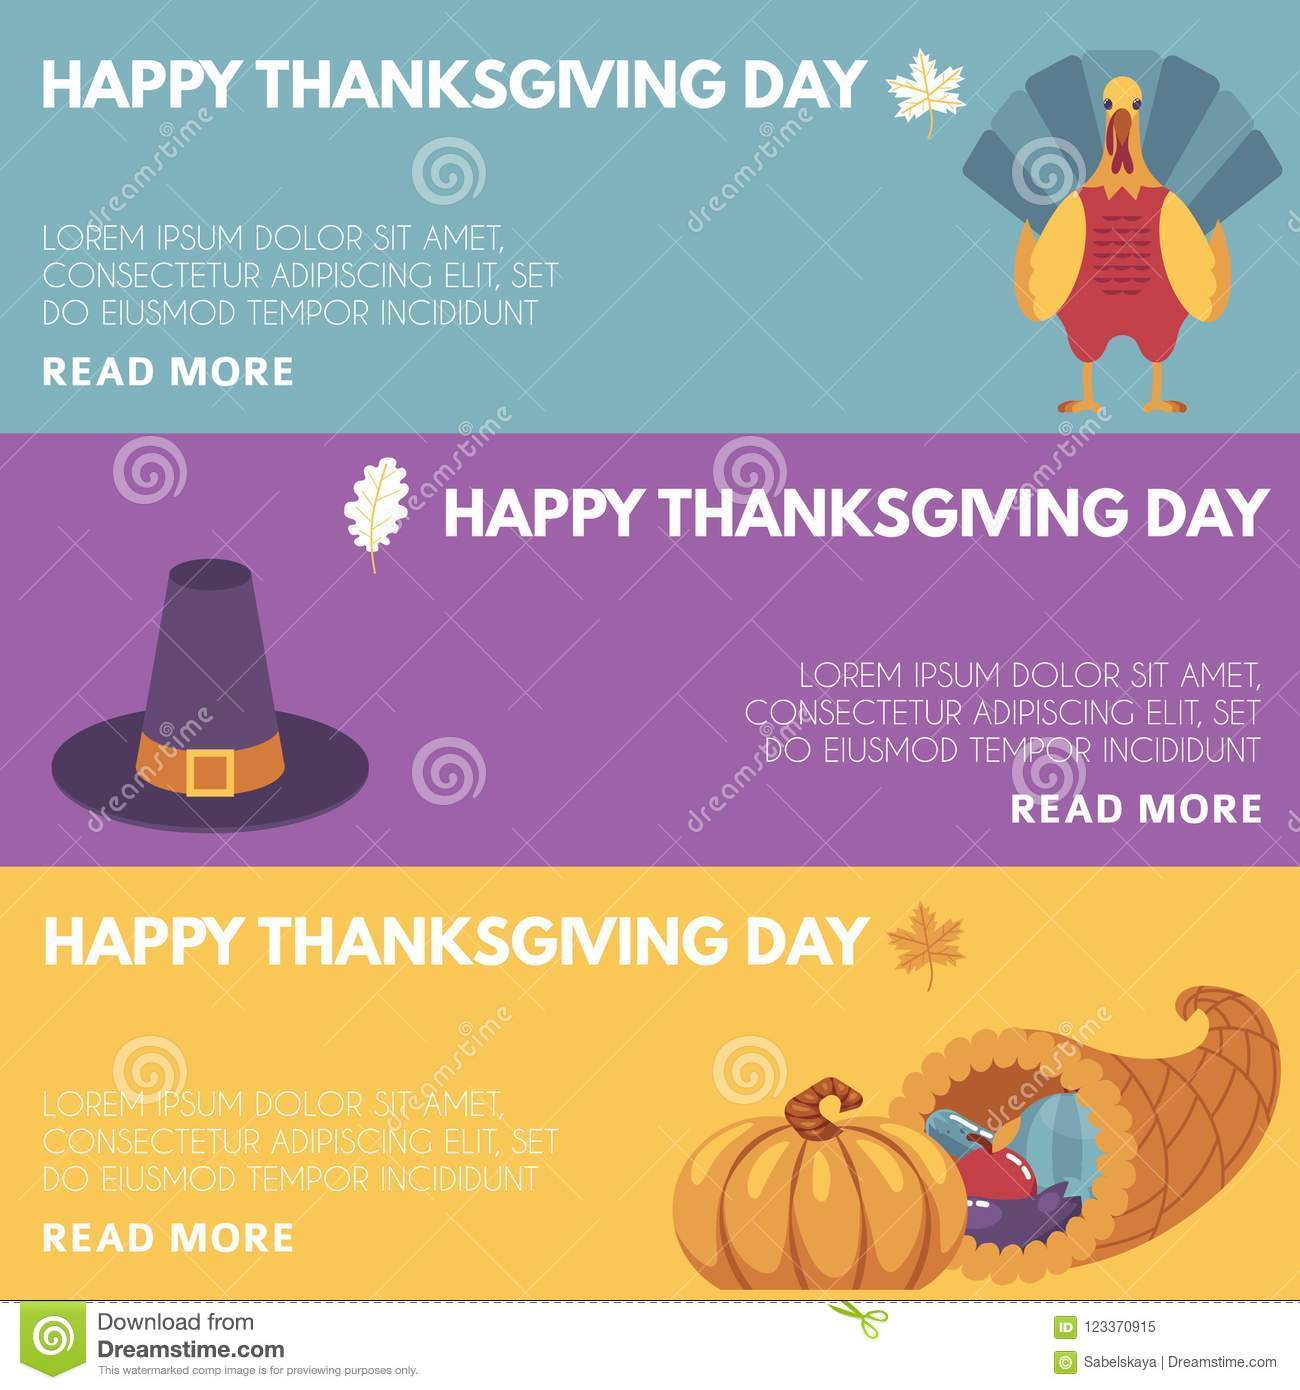 Thanksgiving Day Congratulation Horizontal Banners Set With Images